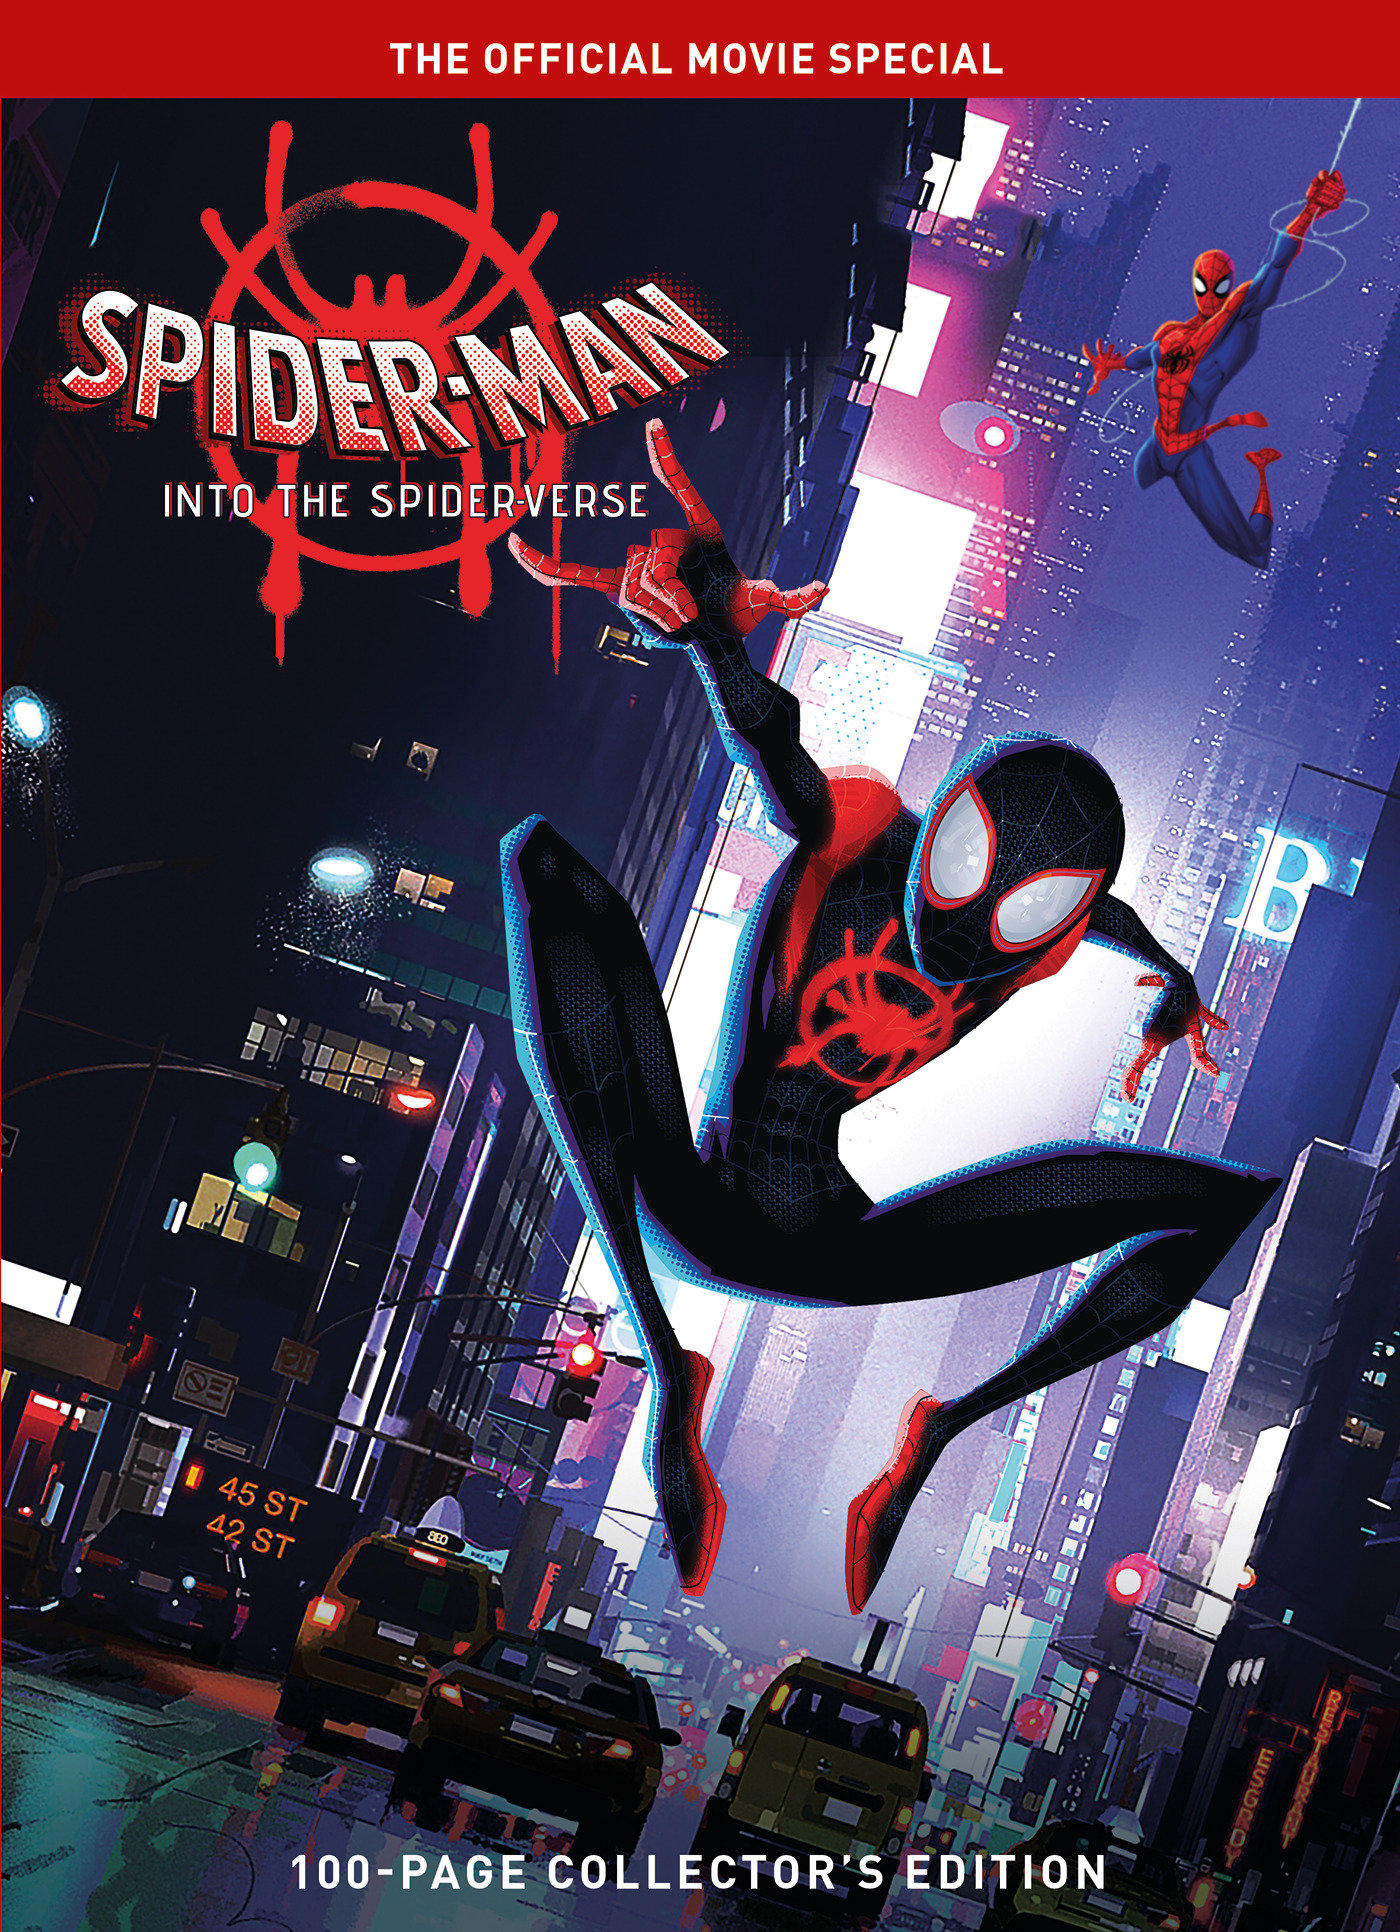 spiderman into the spiderverse the official movie